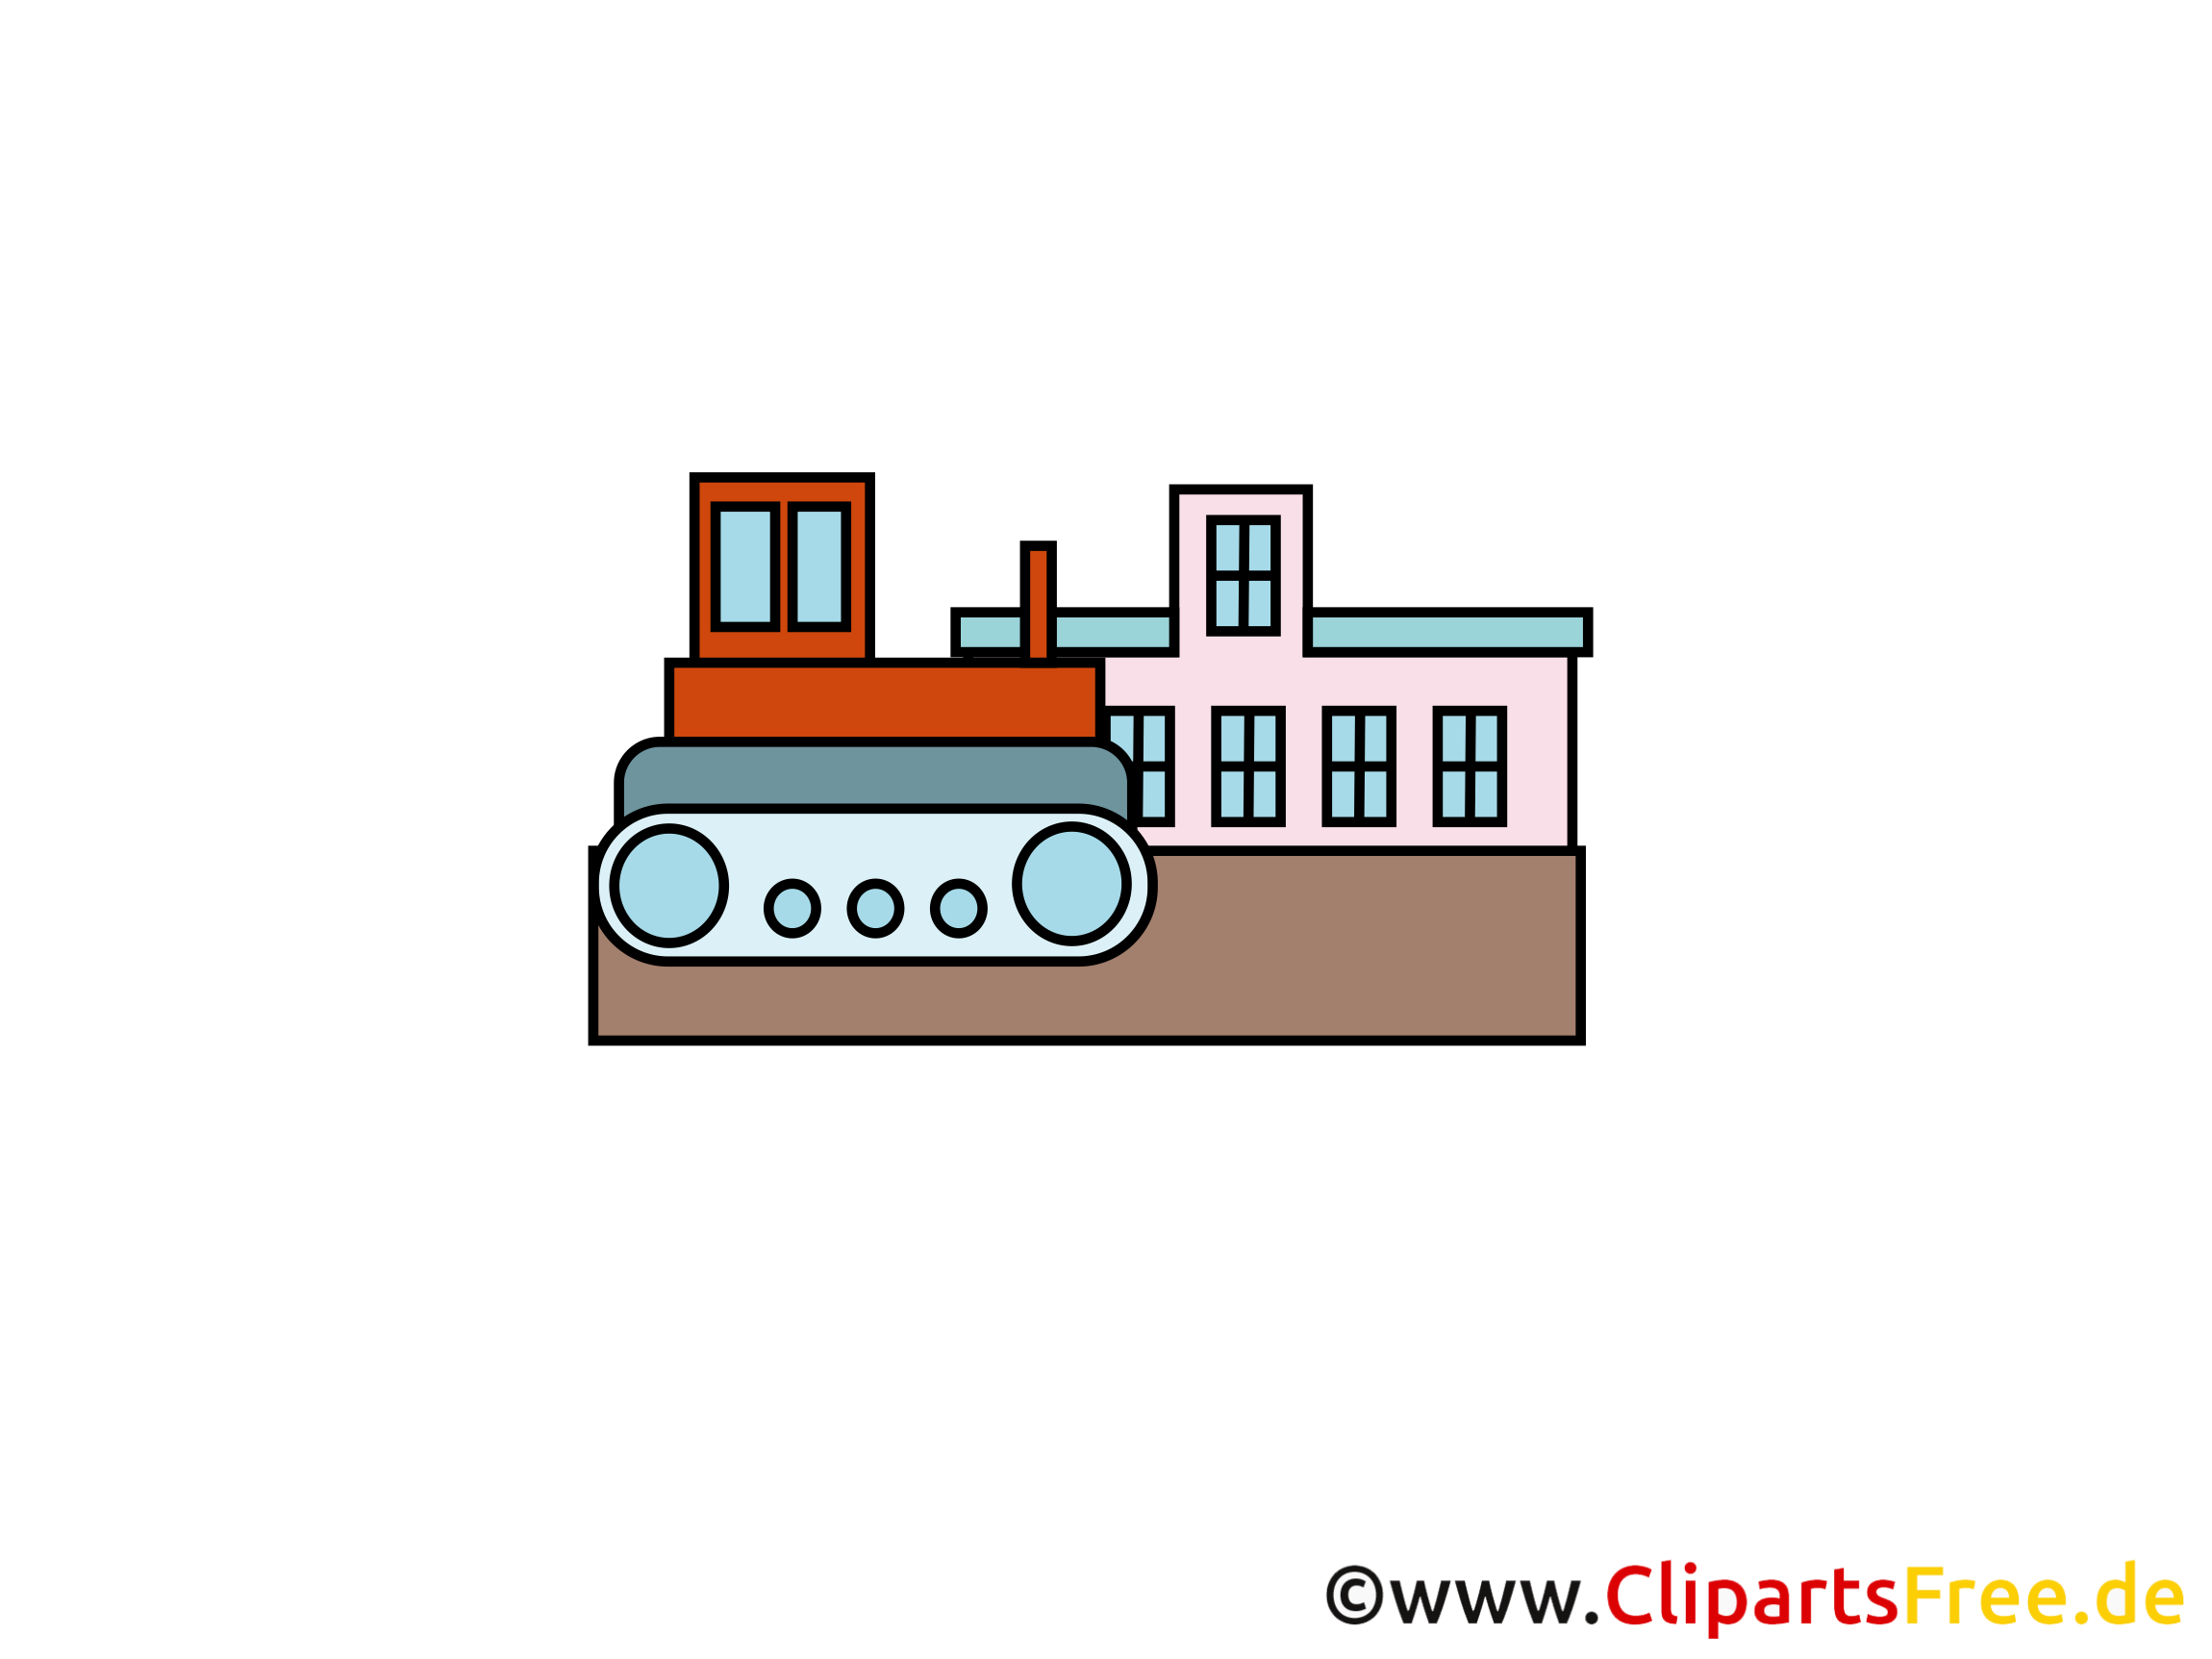 Bulldozer image - Industrie images cliparts